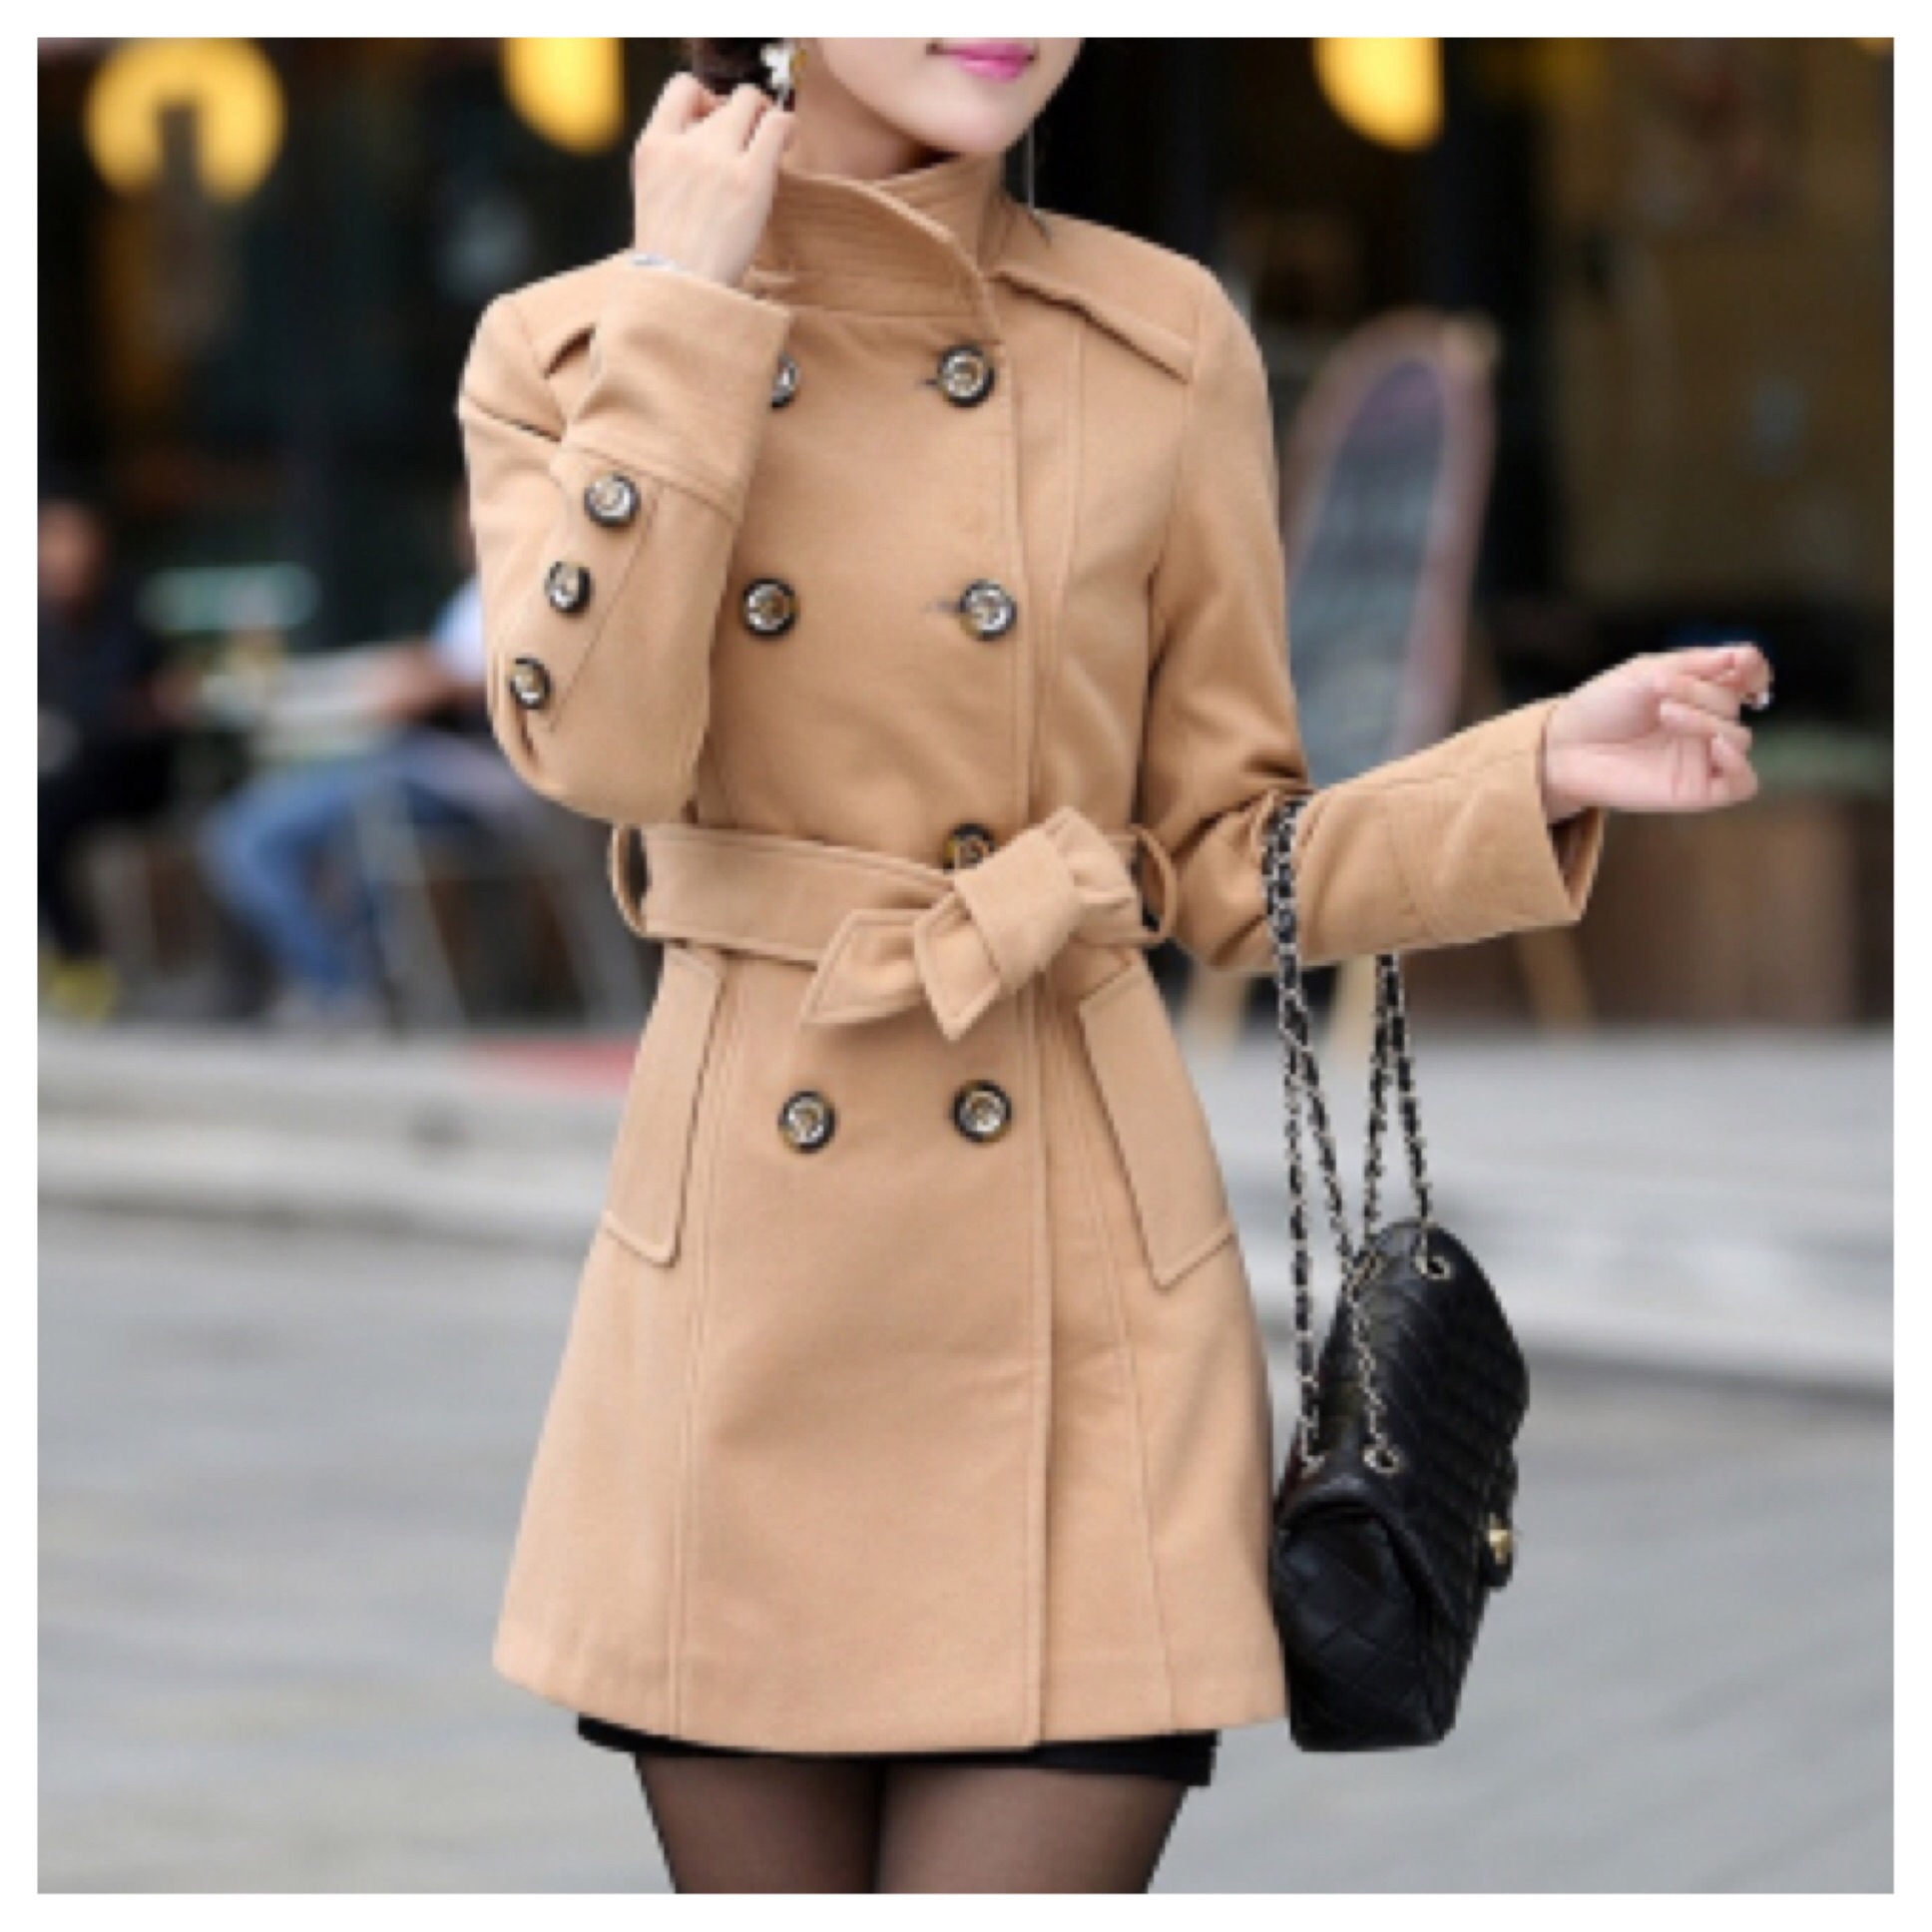 Tan belted high collar wool jacket